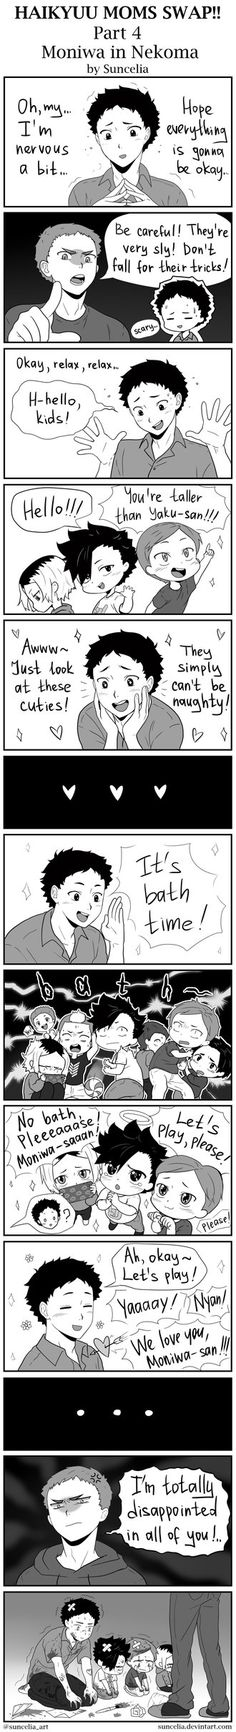 "I just love the idea too much. Once the word ""bath"" was heard they all immediately froze and shivered."